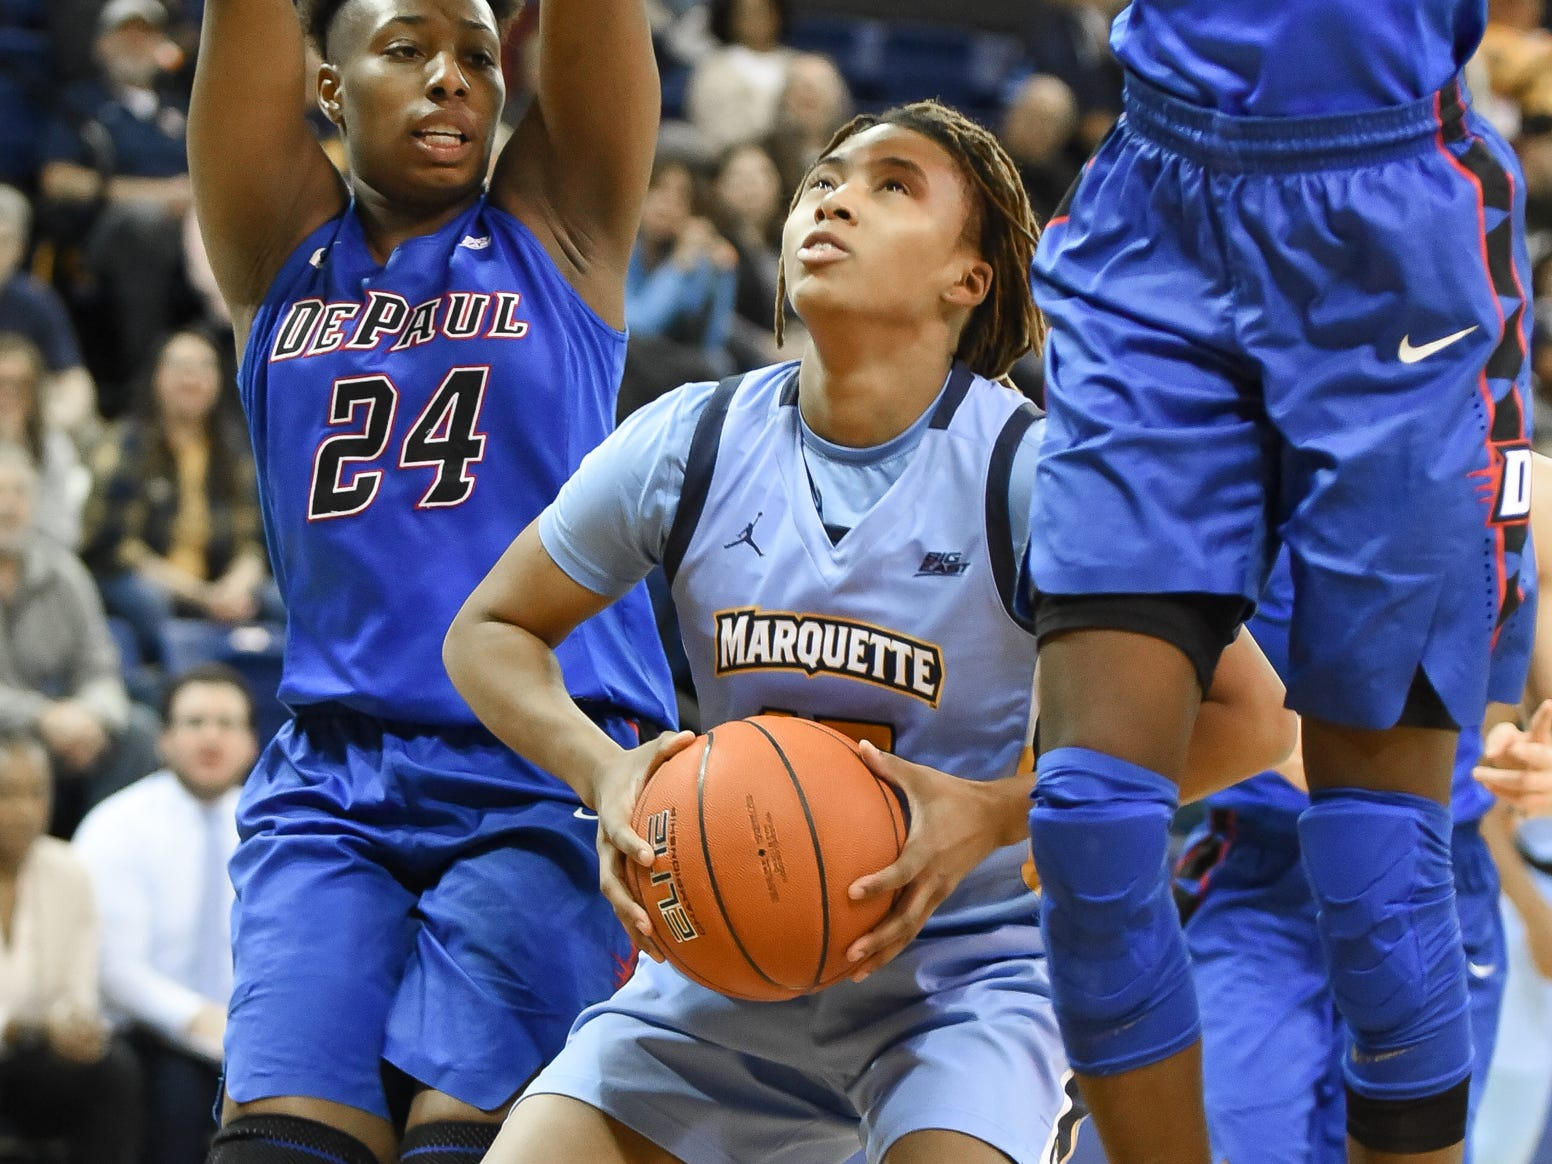 Marquette guard Amani Wilborn fakes DePaul guard Tanita Allen (24) and forward Chante Stonewall before going up for a shot in a Big East Conference women's basketball game Friday, January 4, 2019, at the Al McGuire Center on the Marquette campus.